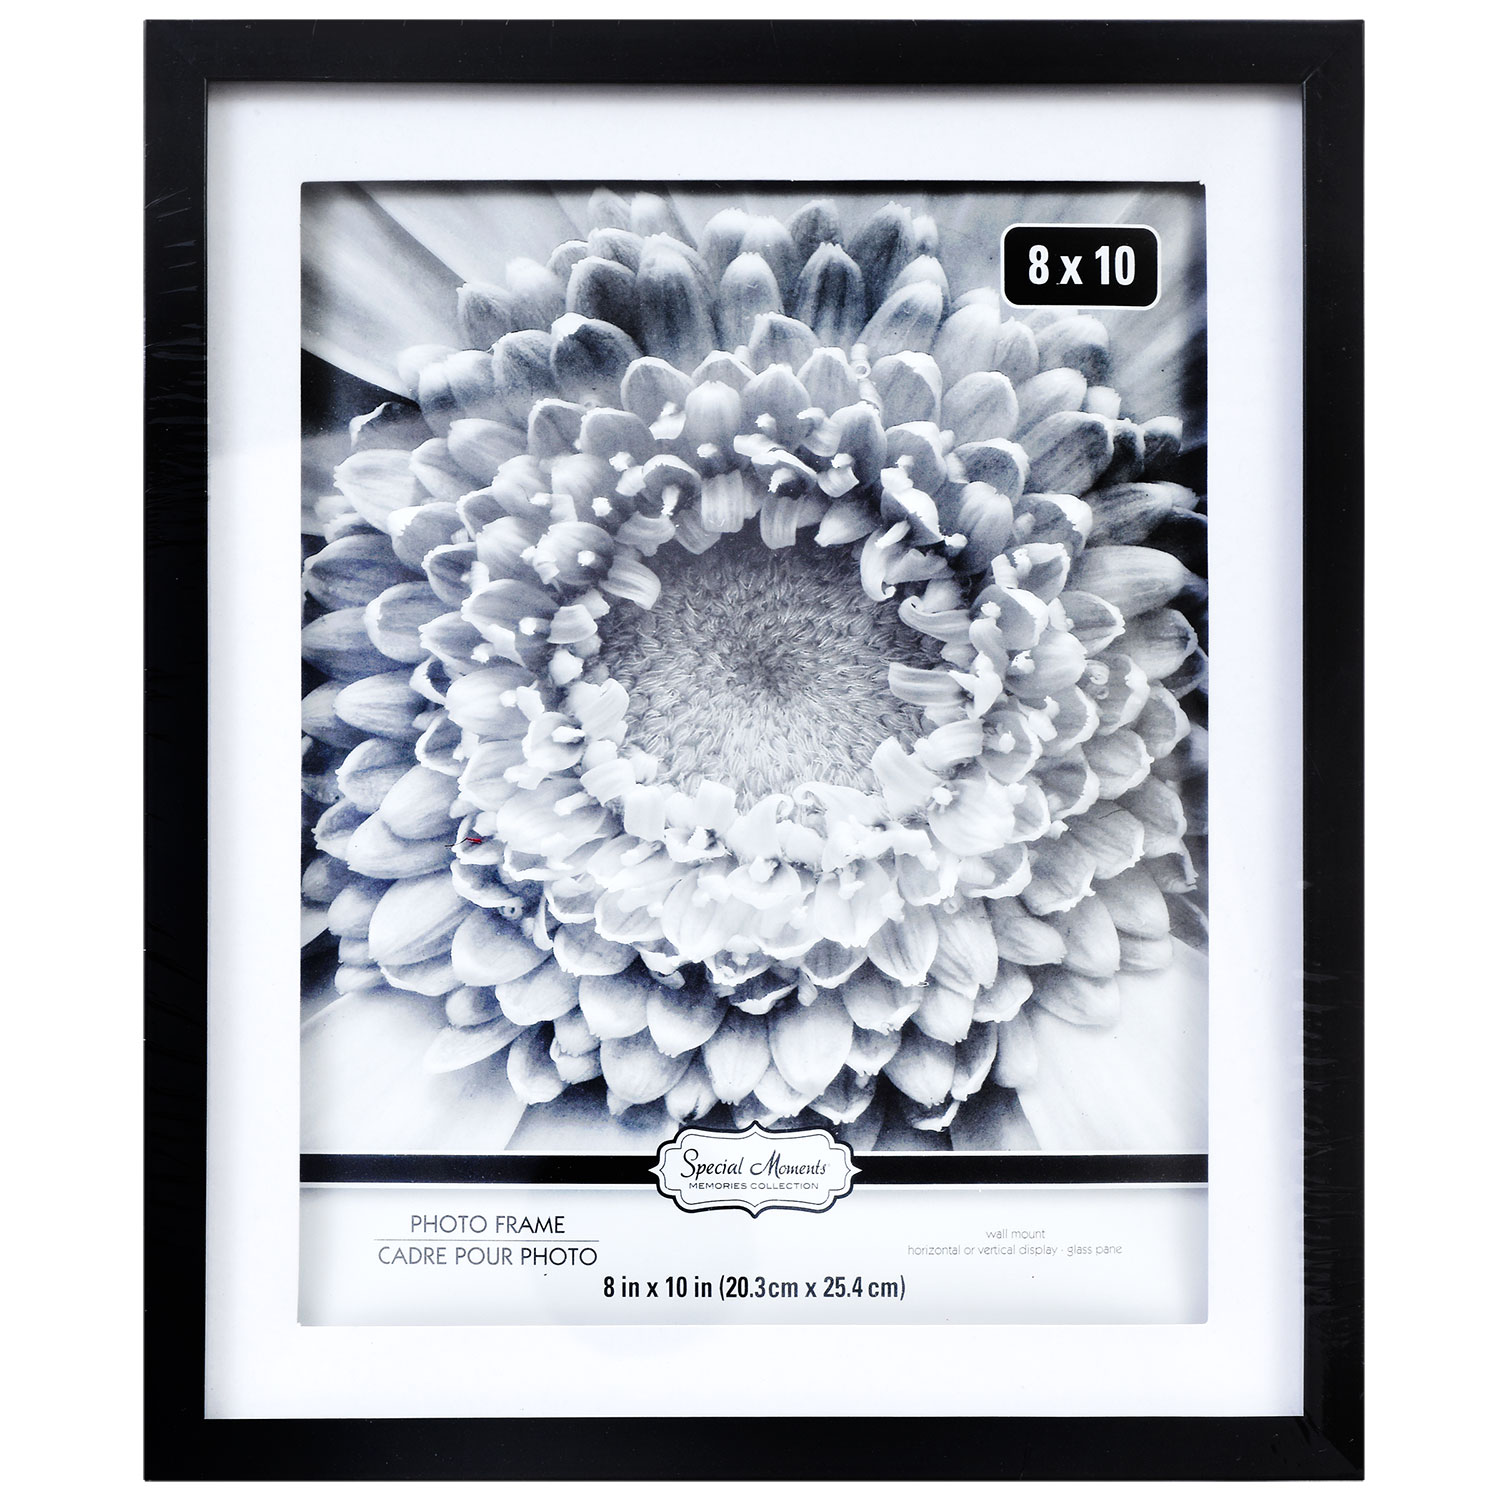 8x10 Frames Dollar Tree Inc